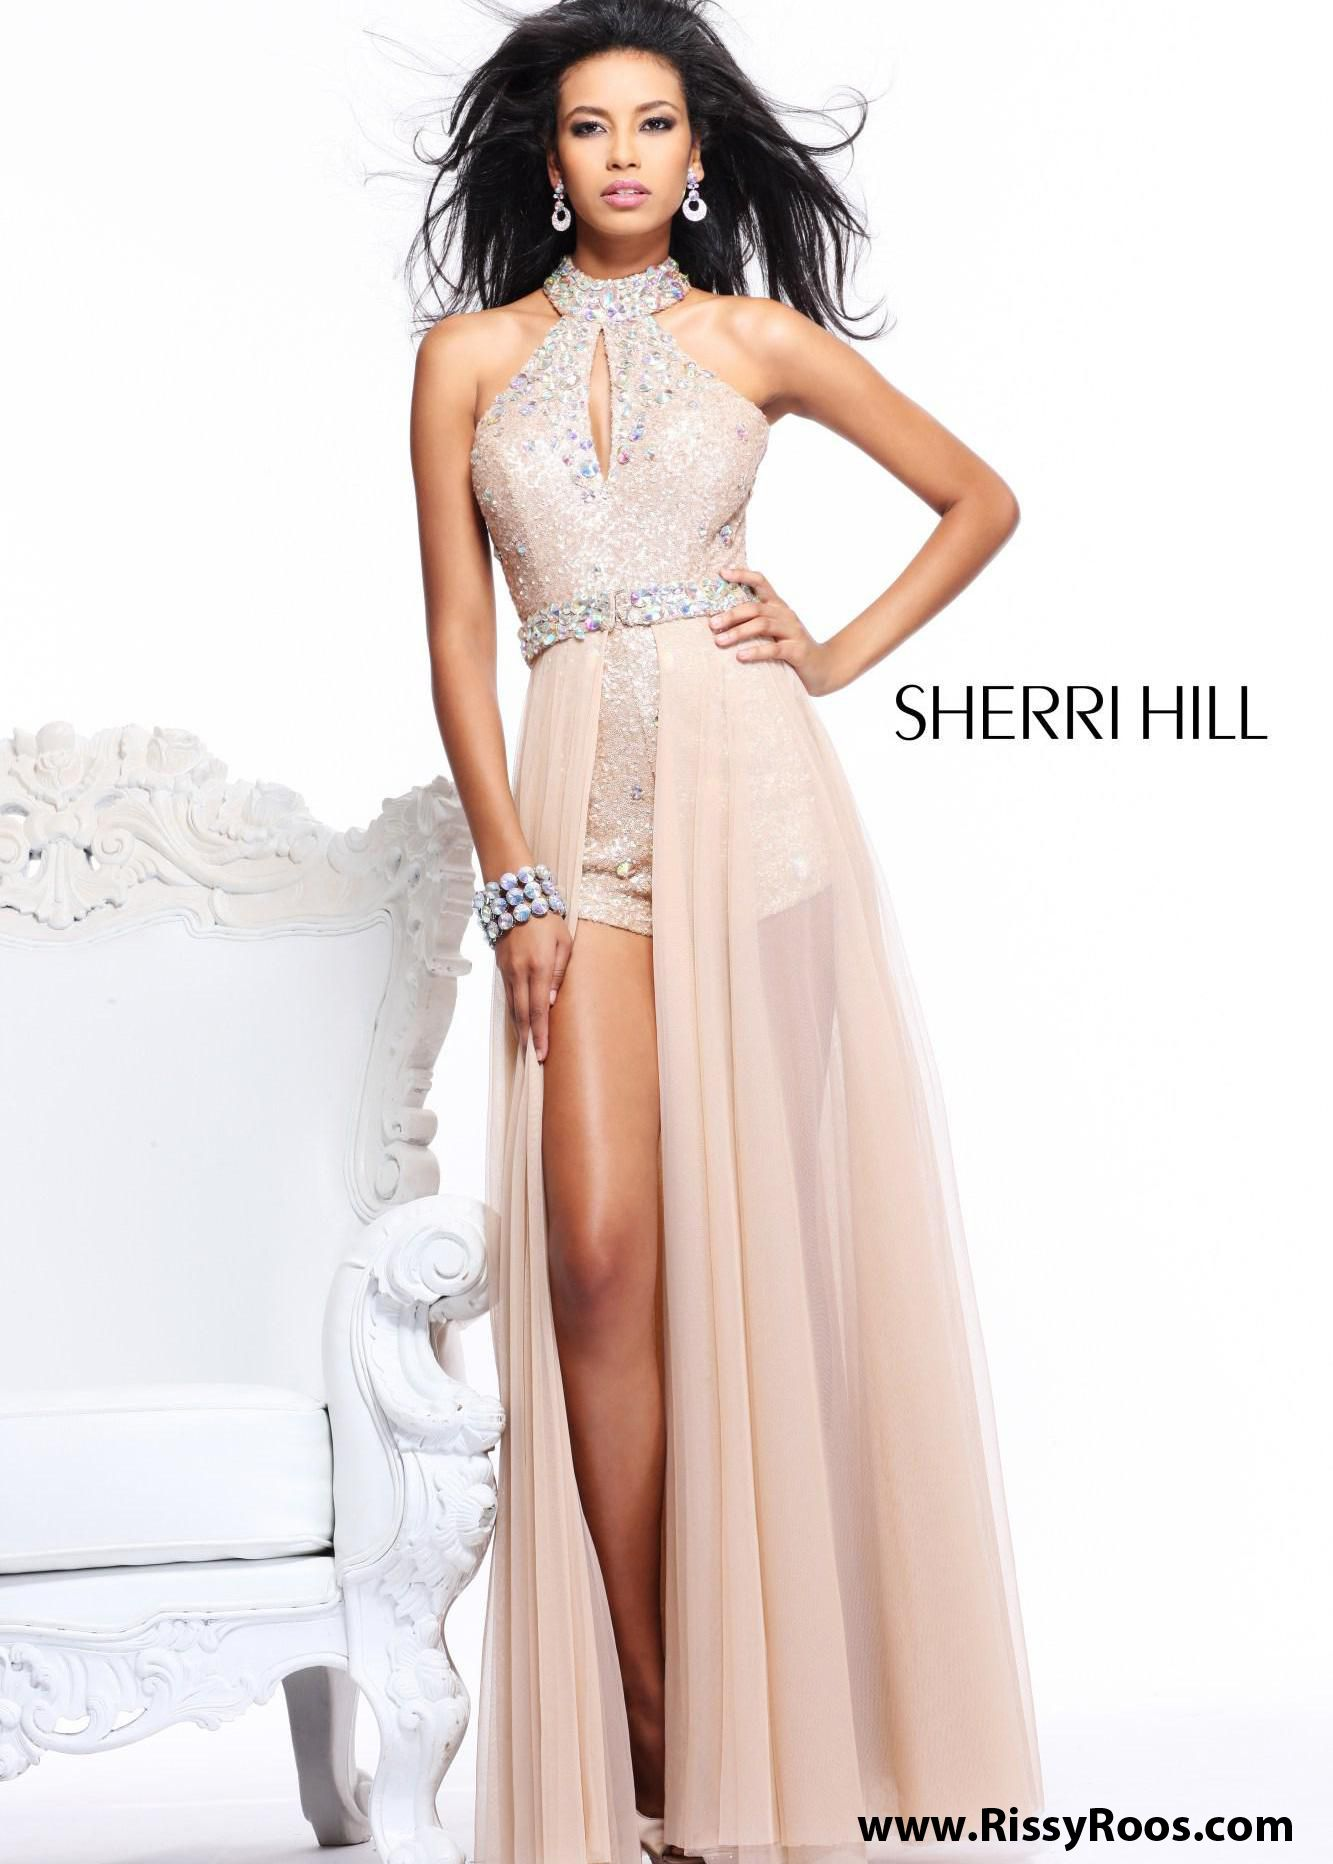 936fa7d0be02 Find Sherri Hill 2975 nude sequin high low prom dresses available now at  RissyRoos.com.